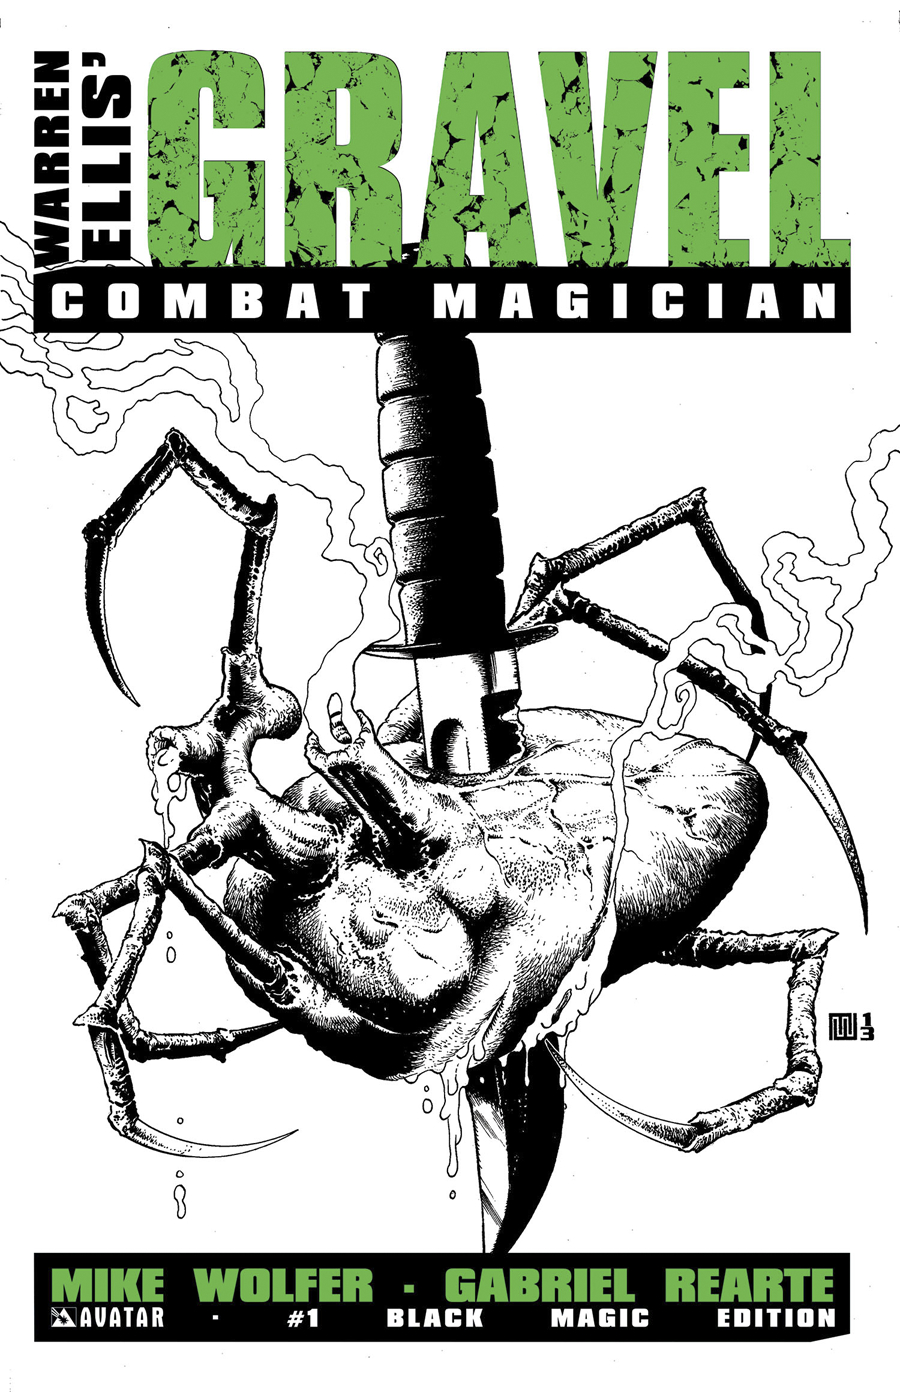 GRAVEL COMBAT MAGICIAN #1 BLACK MAGIC RETAILER ORDER INCV